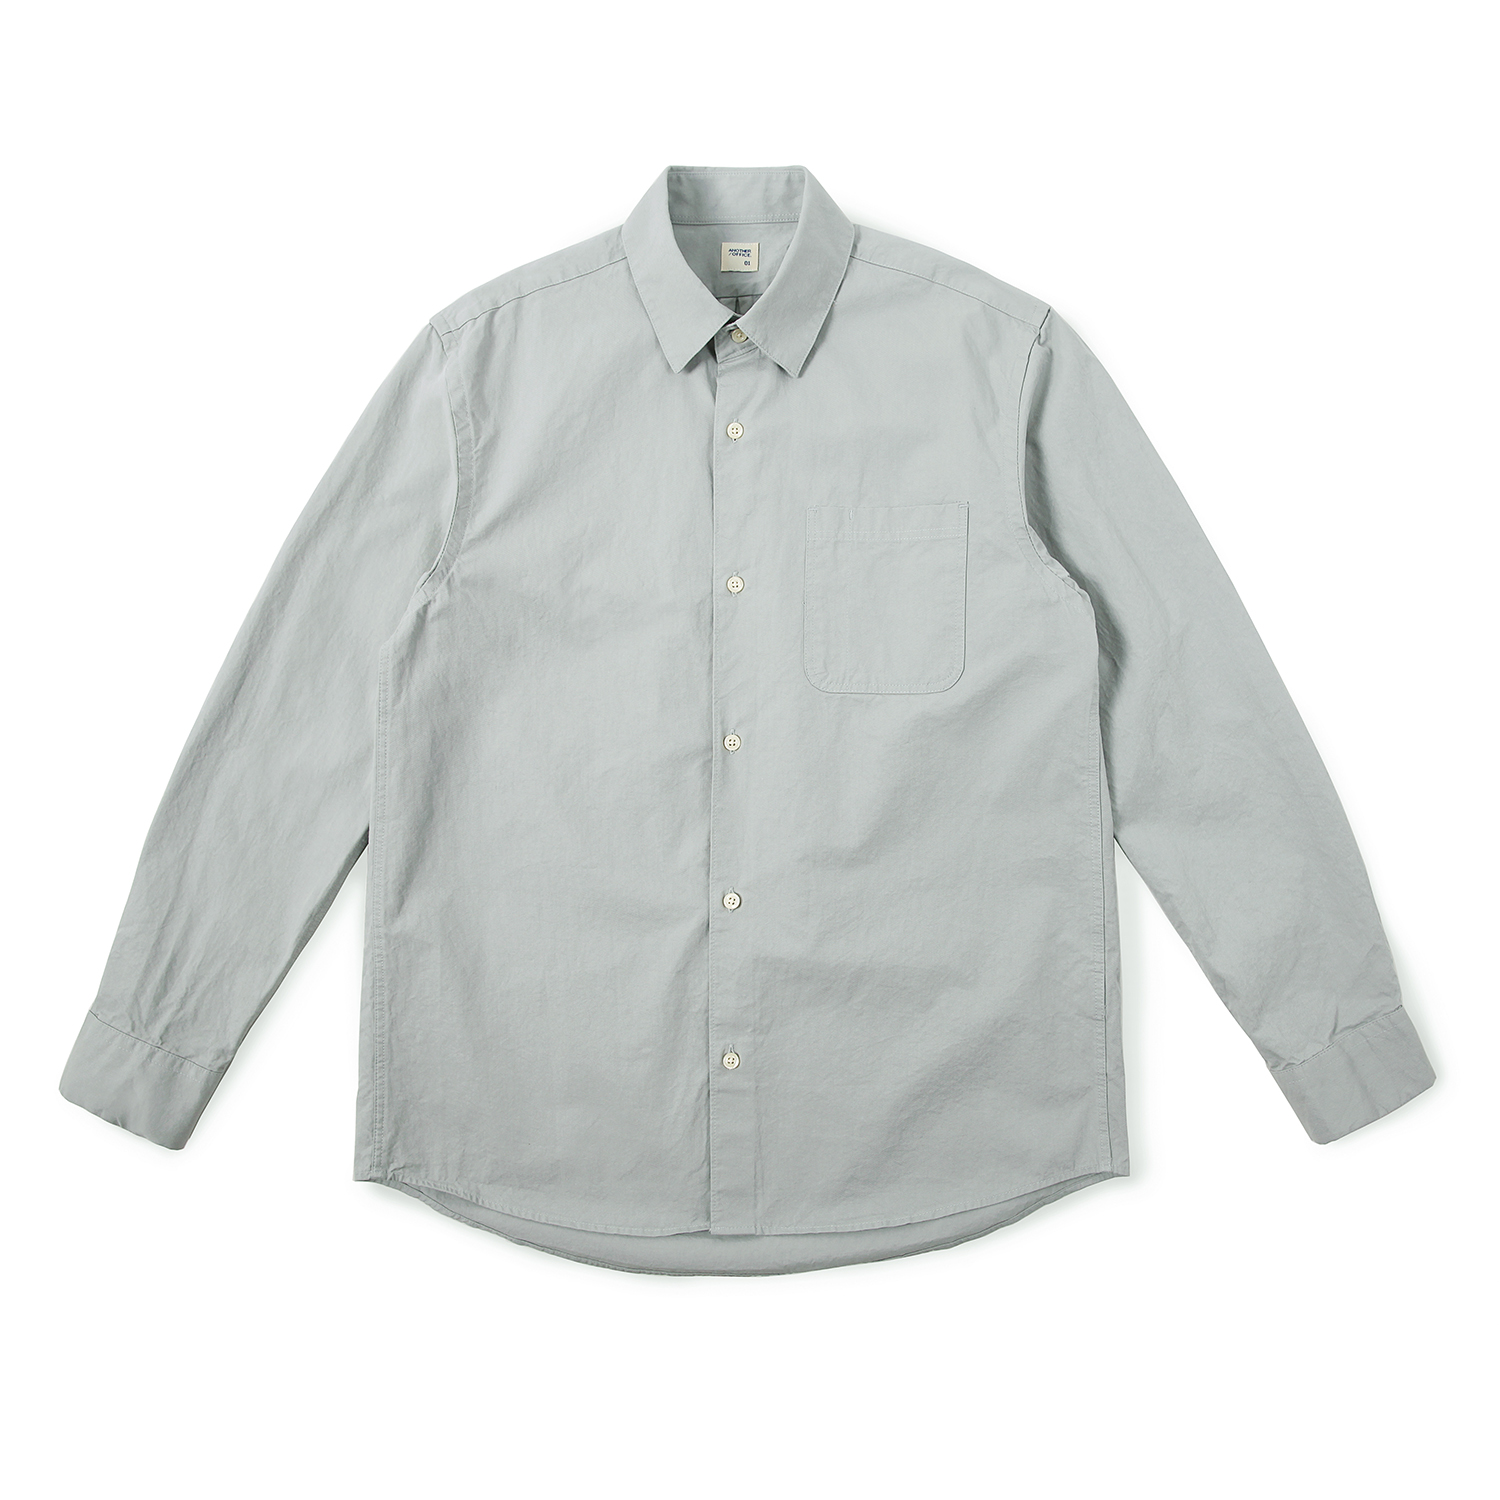 25%OFF_Daily Life Shirt (Steel Grey)